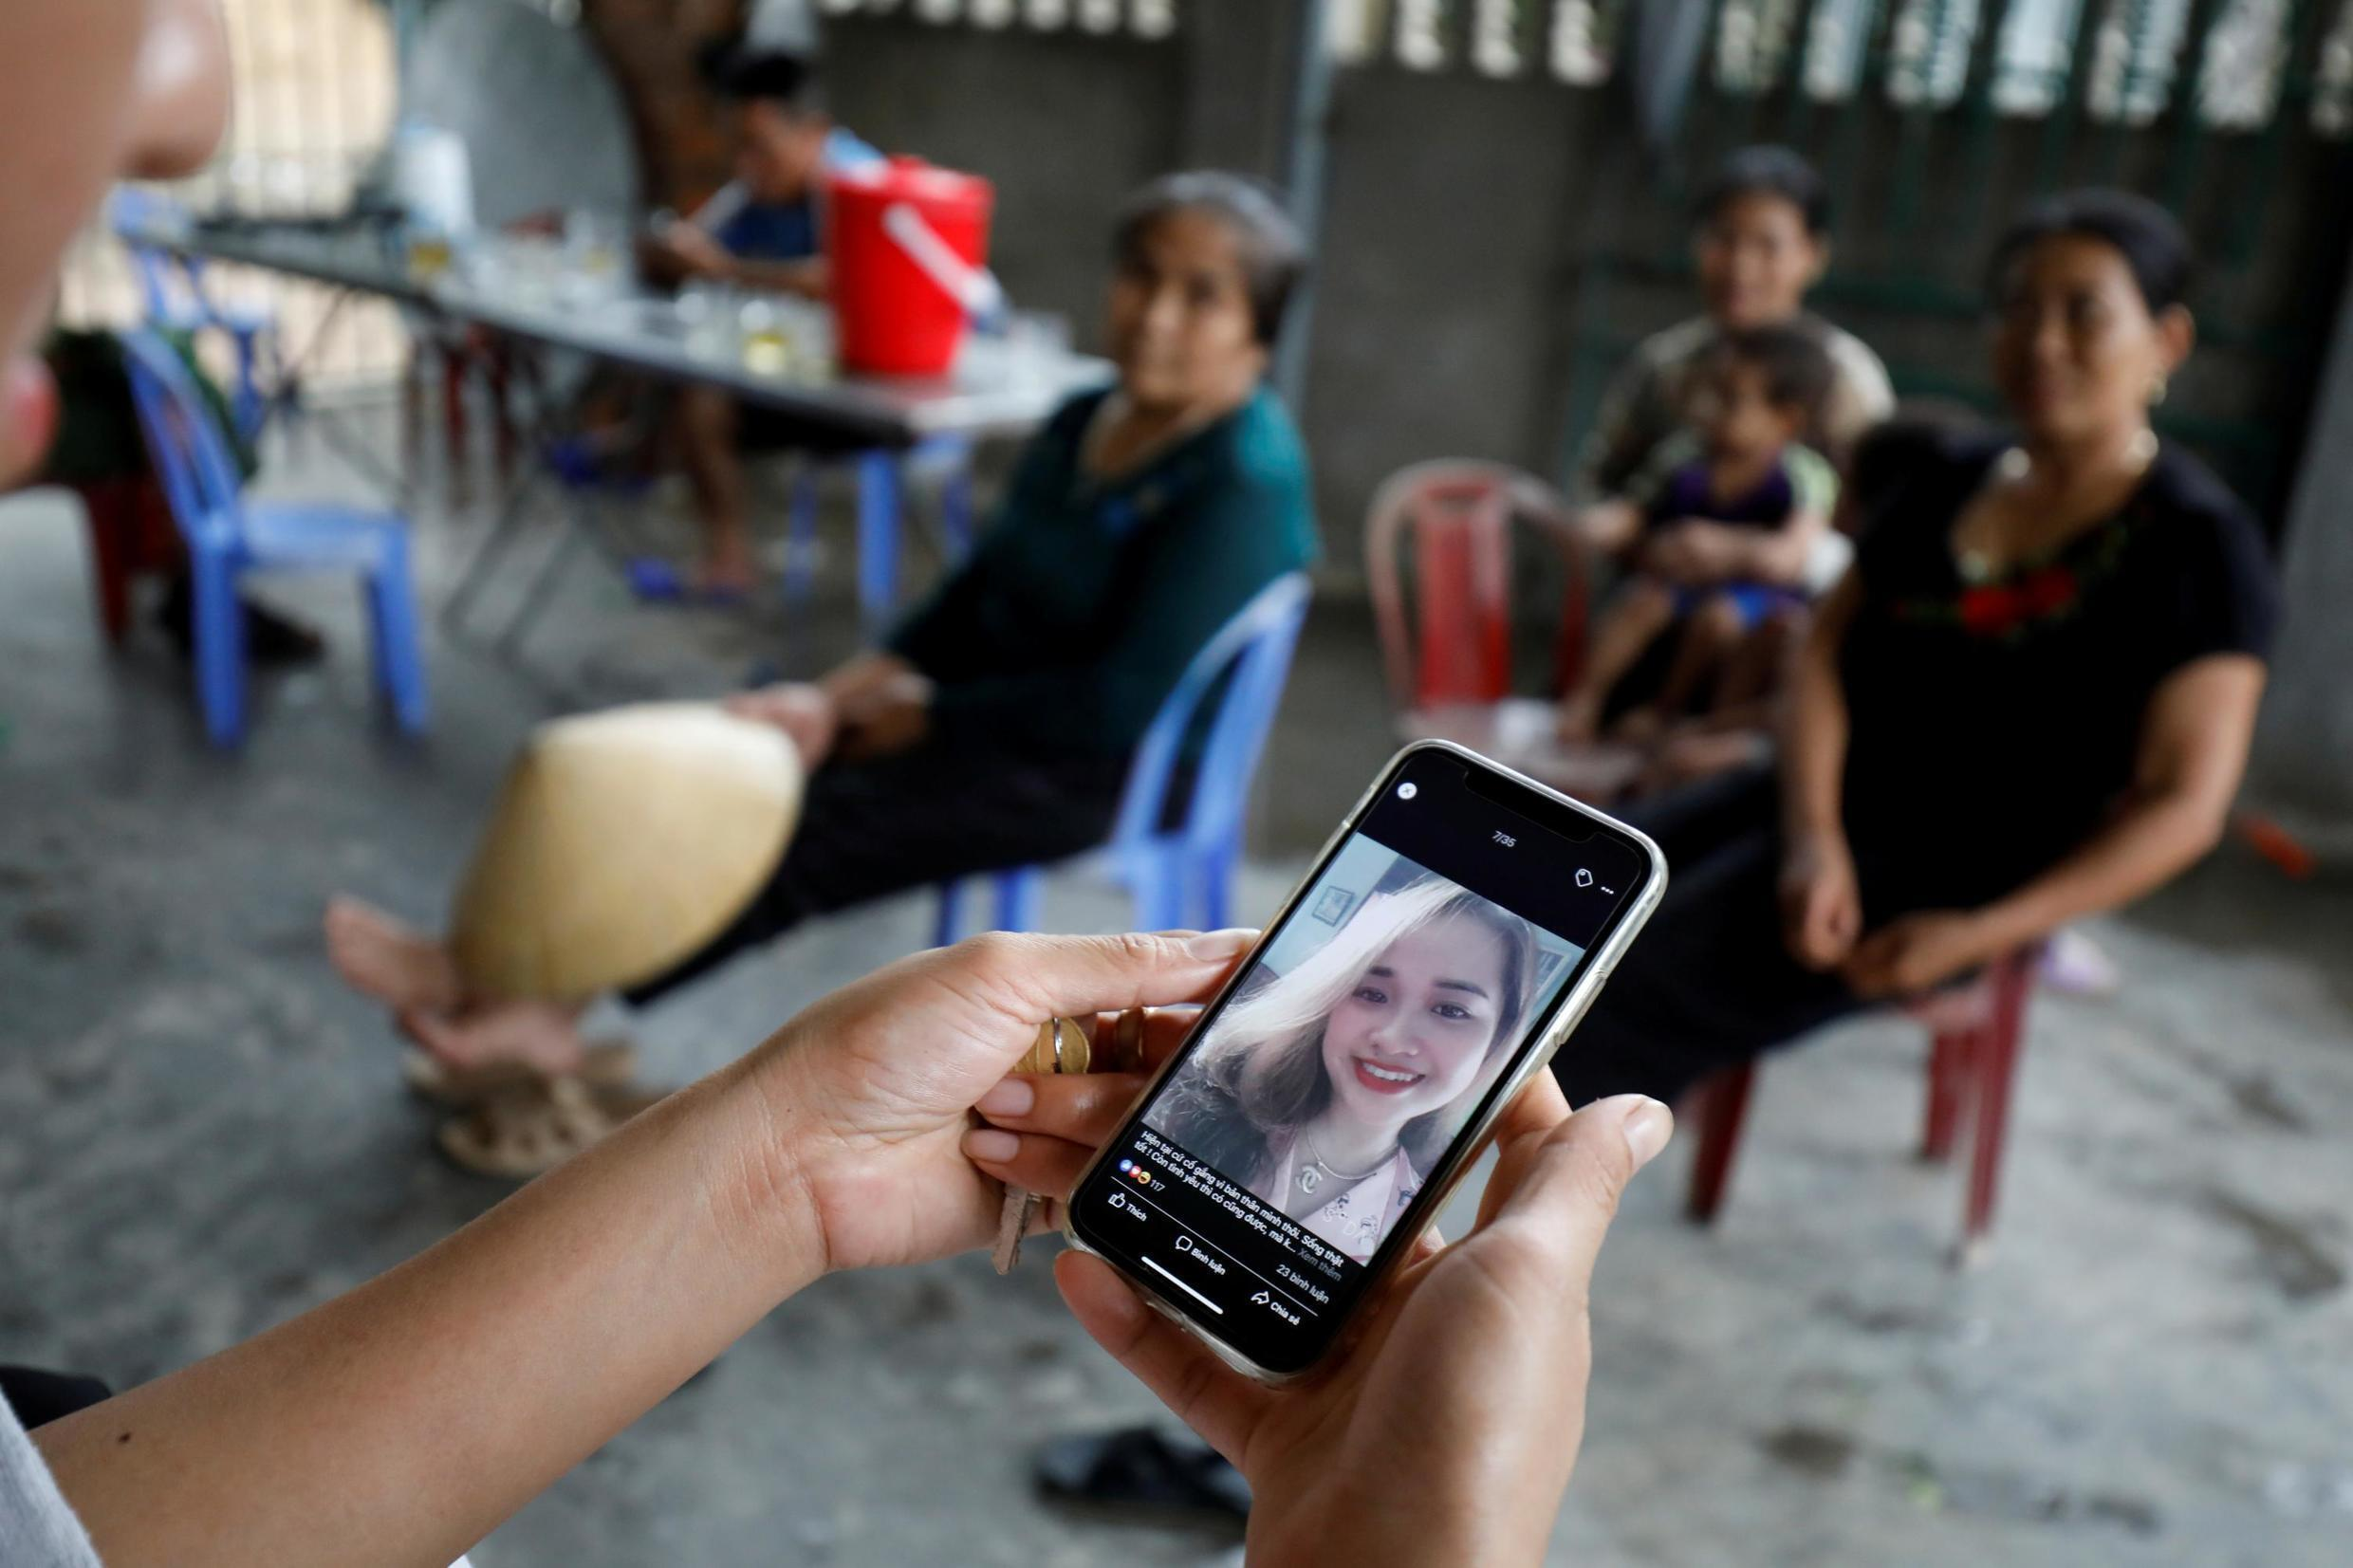 A family from Nghe An province concerned that one of their relatives was among the victims found dead in a truck near London in October 2019.